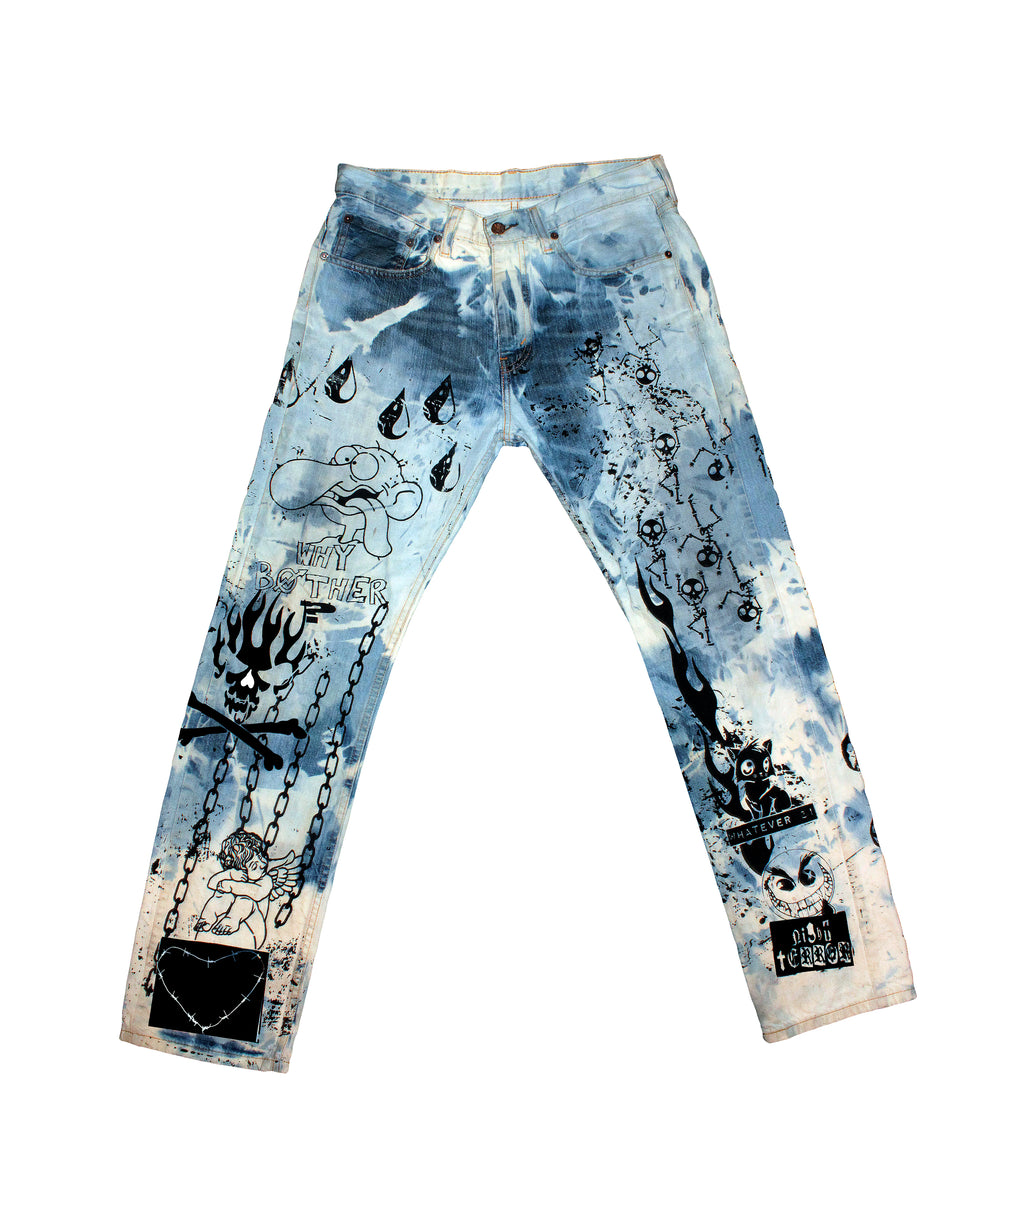 Night Terror Acid Wash Jeans